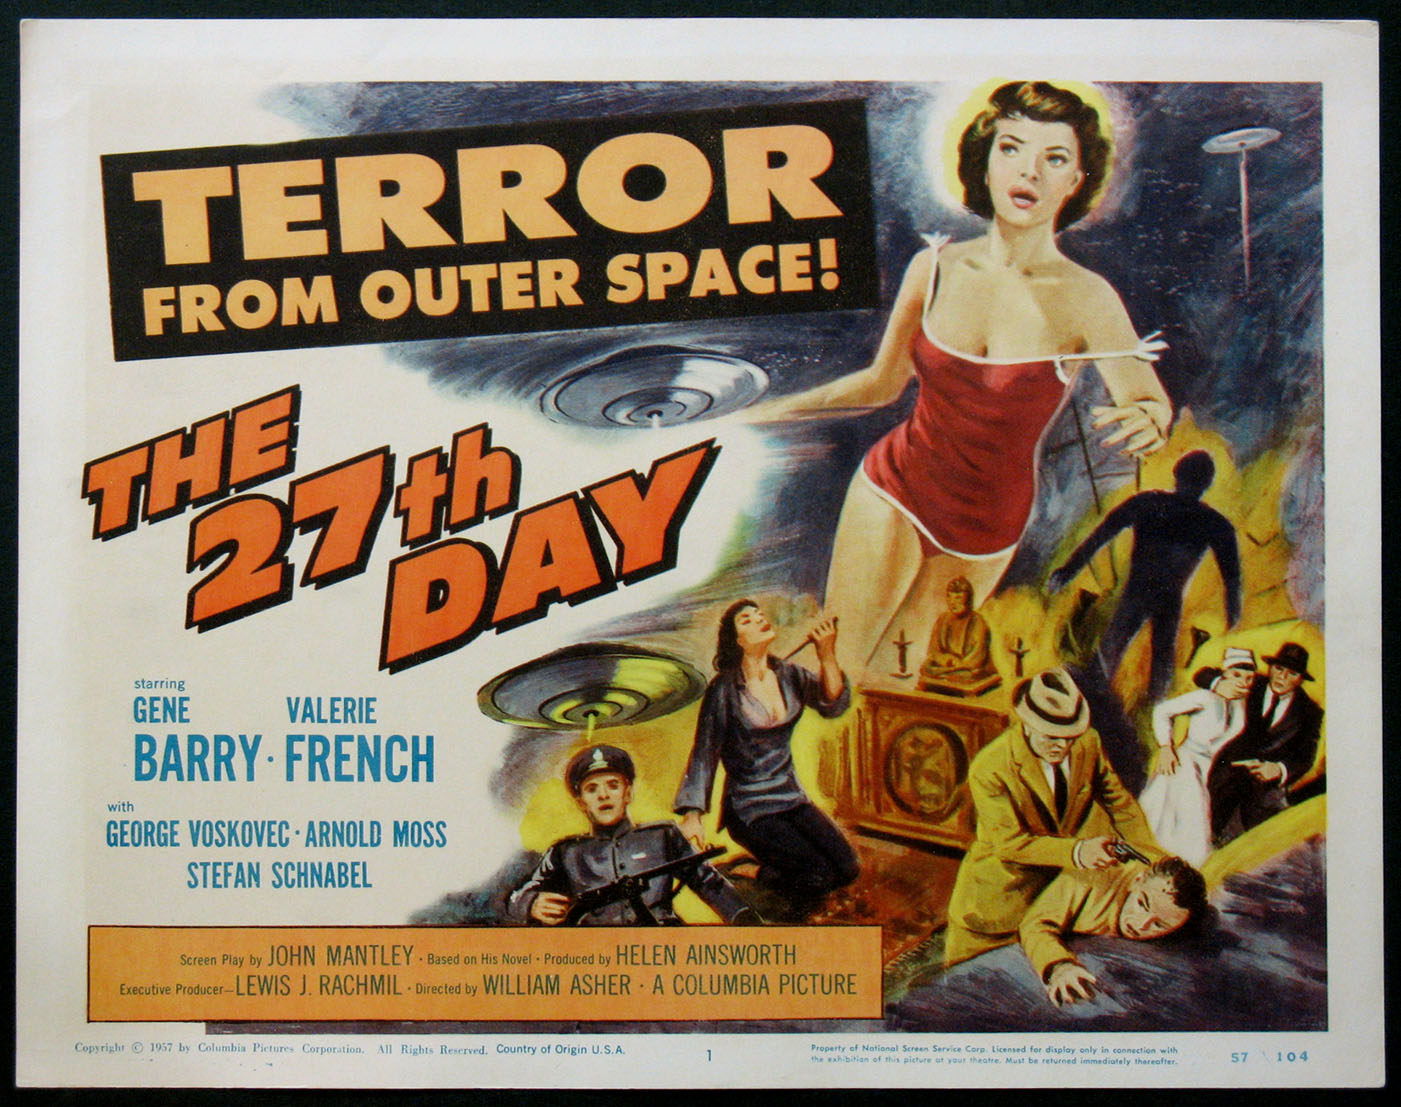 27TH DAY, THE @ FilmPosters.com